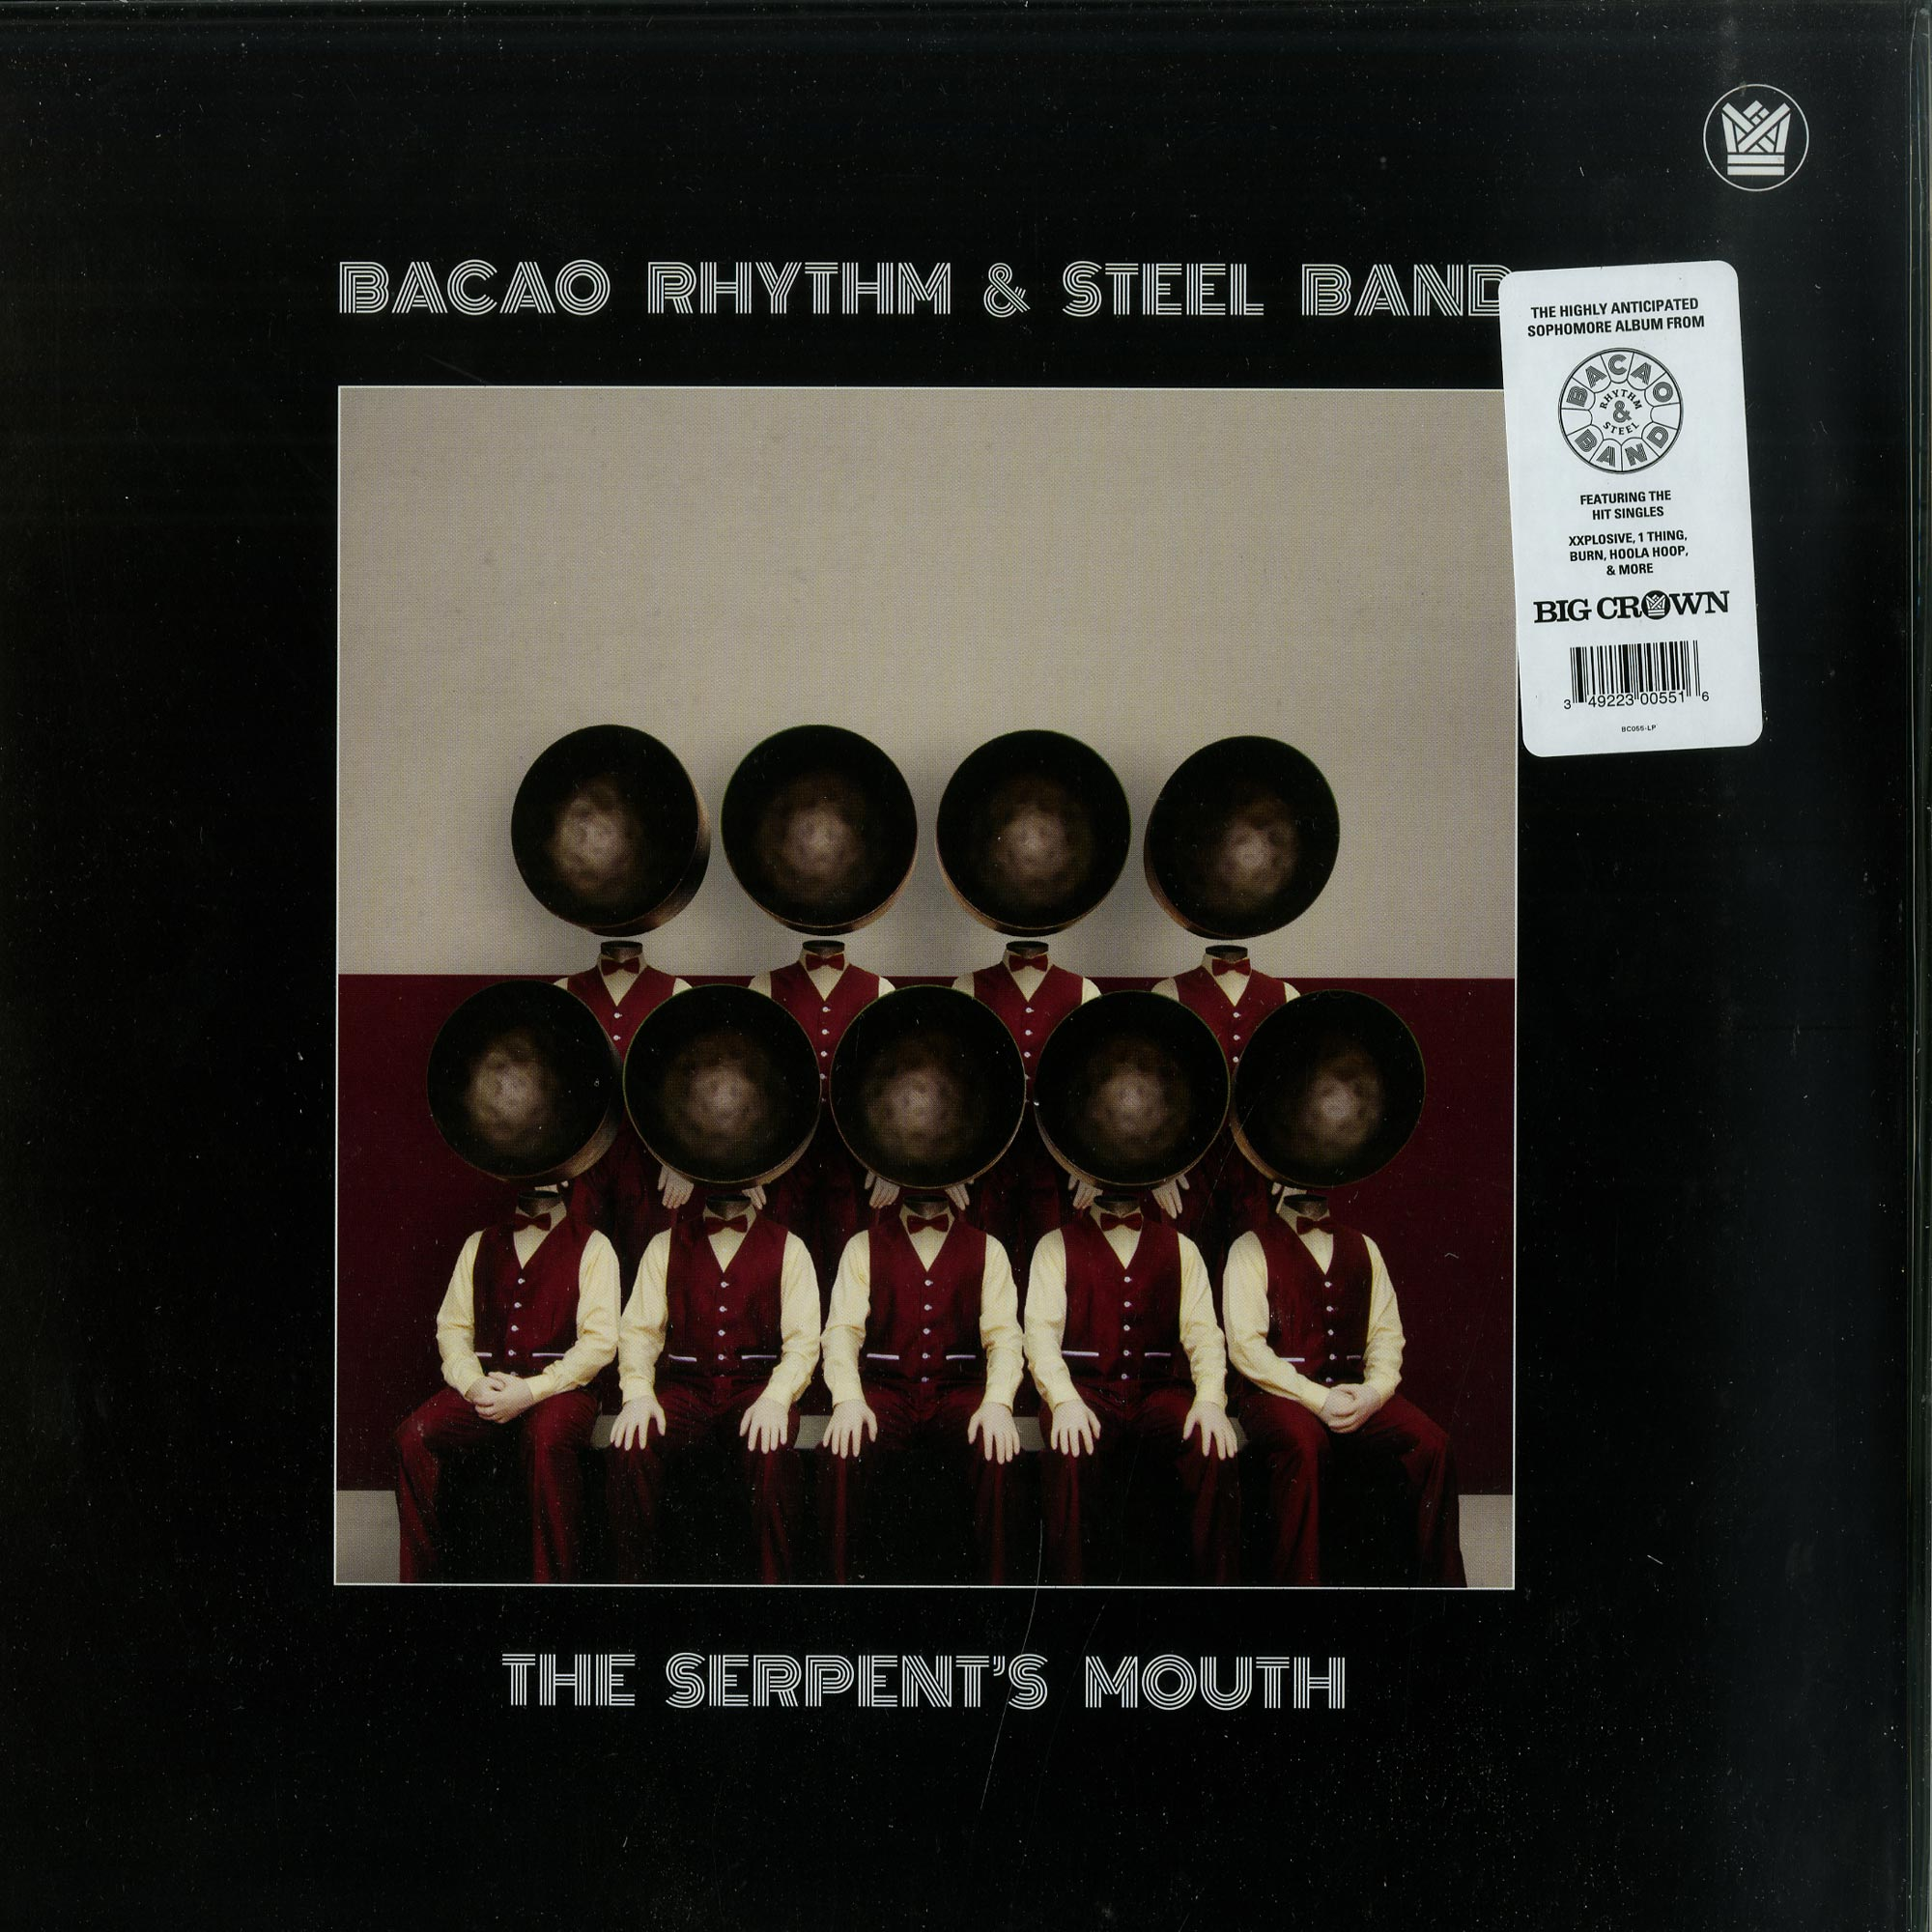 Bacao Rhythm & Steel Band - THE SERPENTS MOUTH